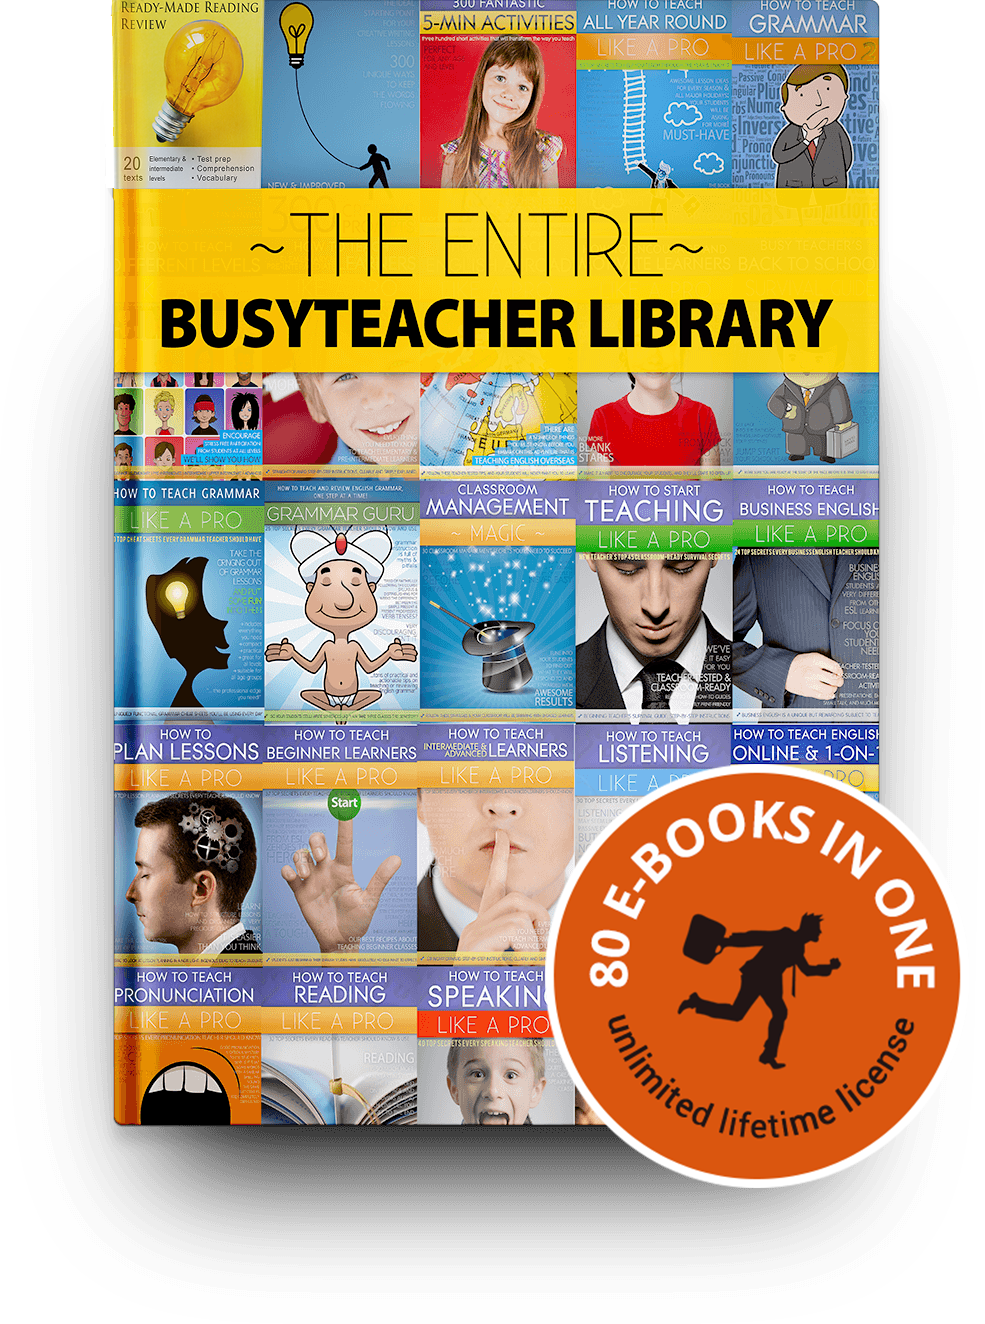 Entire BusyTeacher Library